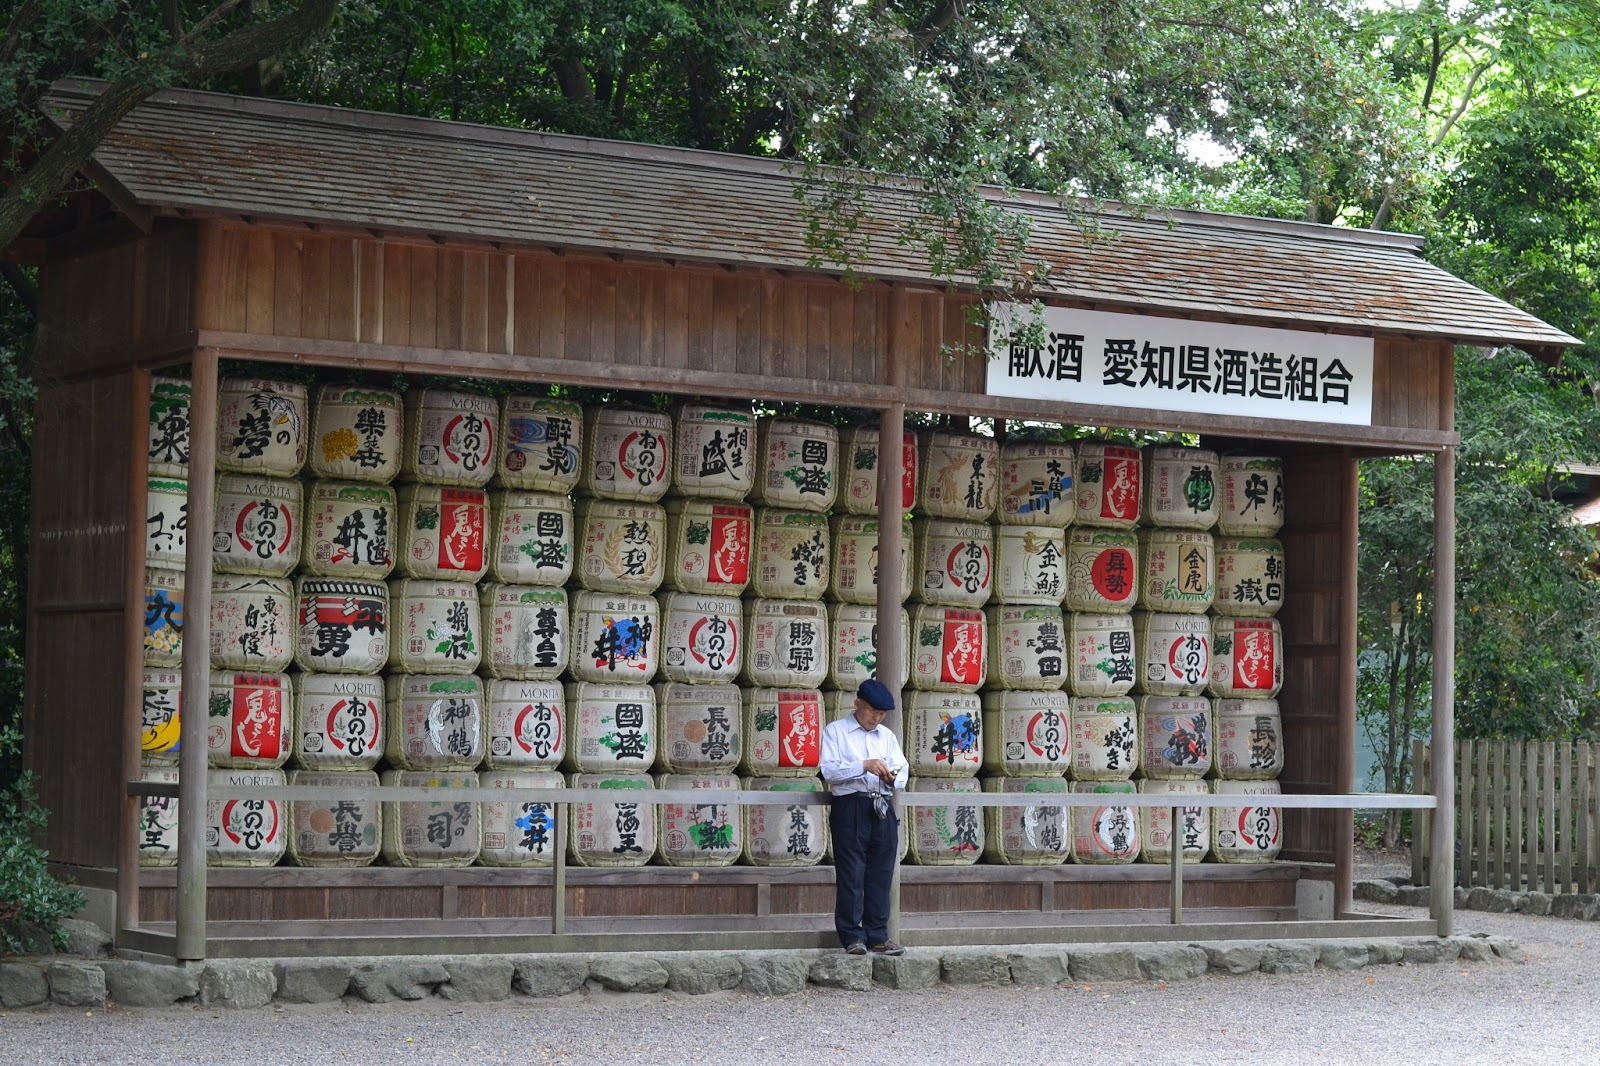 Victoria In Japan Land: Atsuta Shrine: The Roosters!